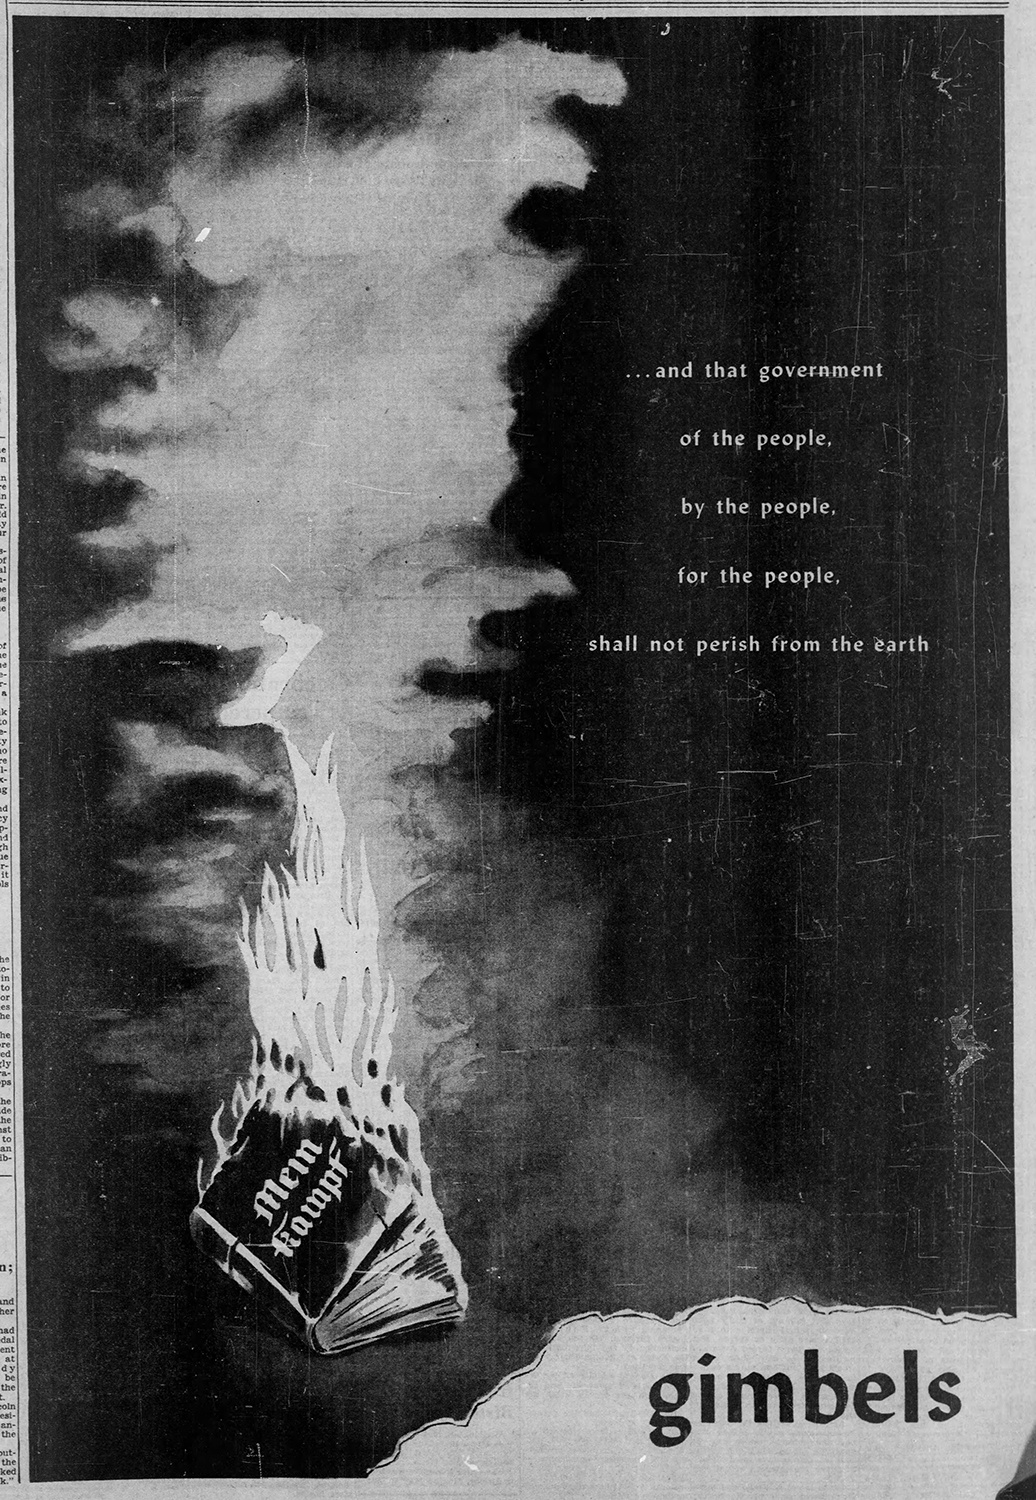 """ . . . and the government of the people, by the people, for the people, shall not perish from the earth,"" Gimbels' advertisement marking V-E Day, Pittsburgh Post-Gazette, May 8 1945."